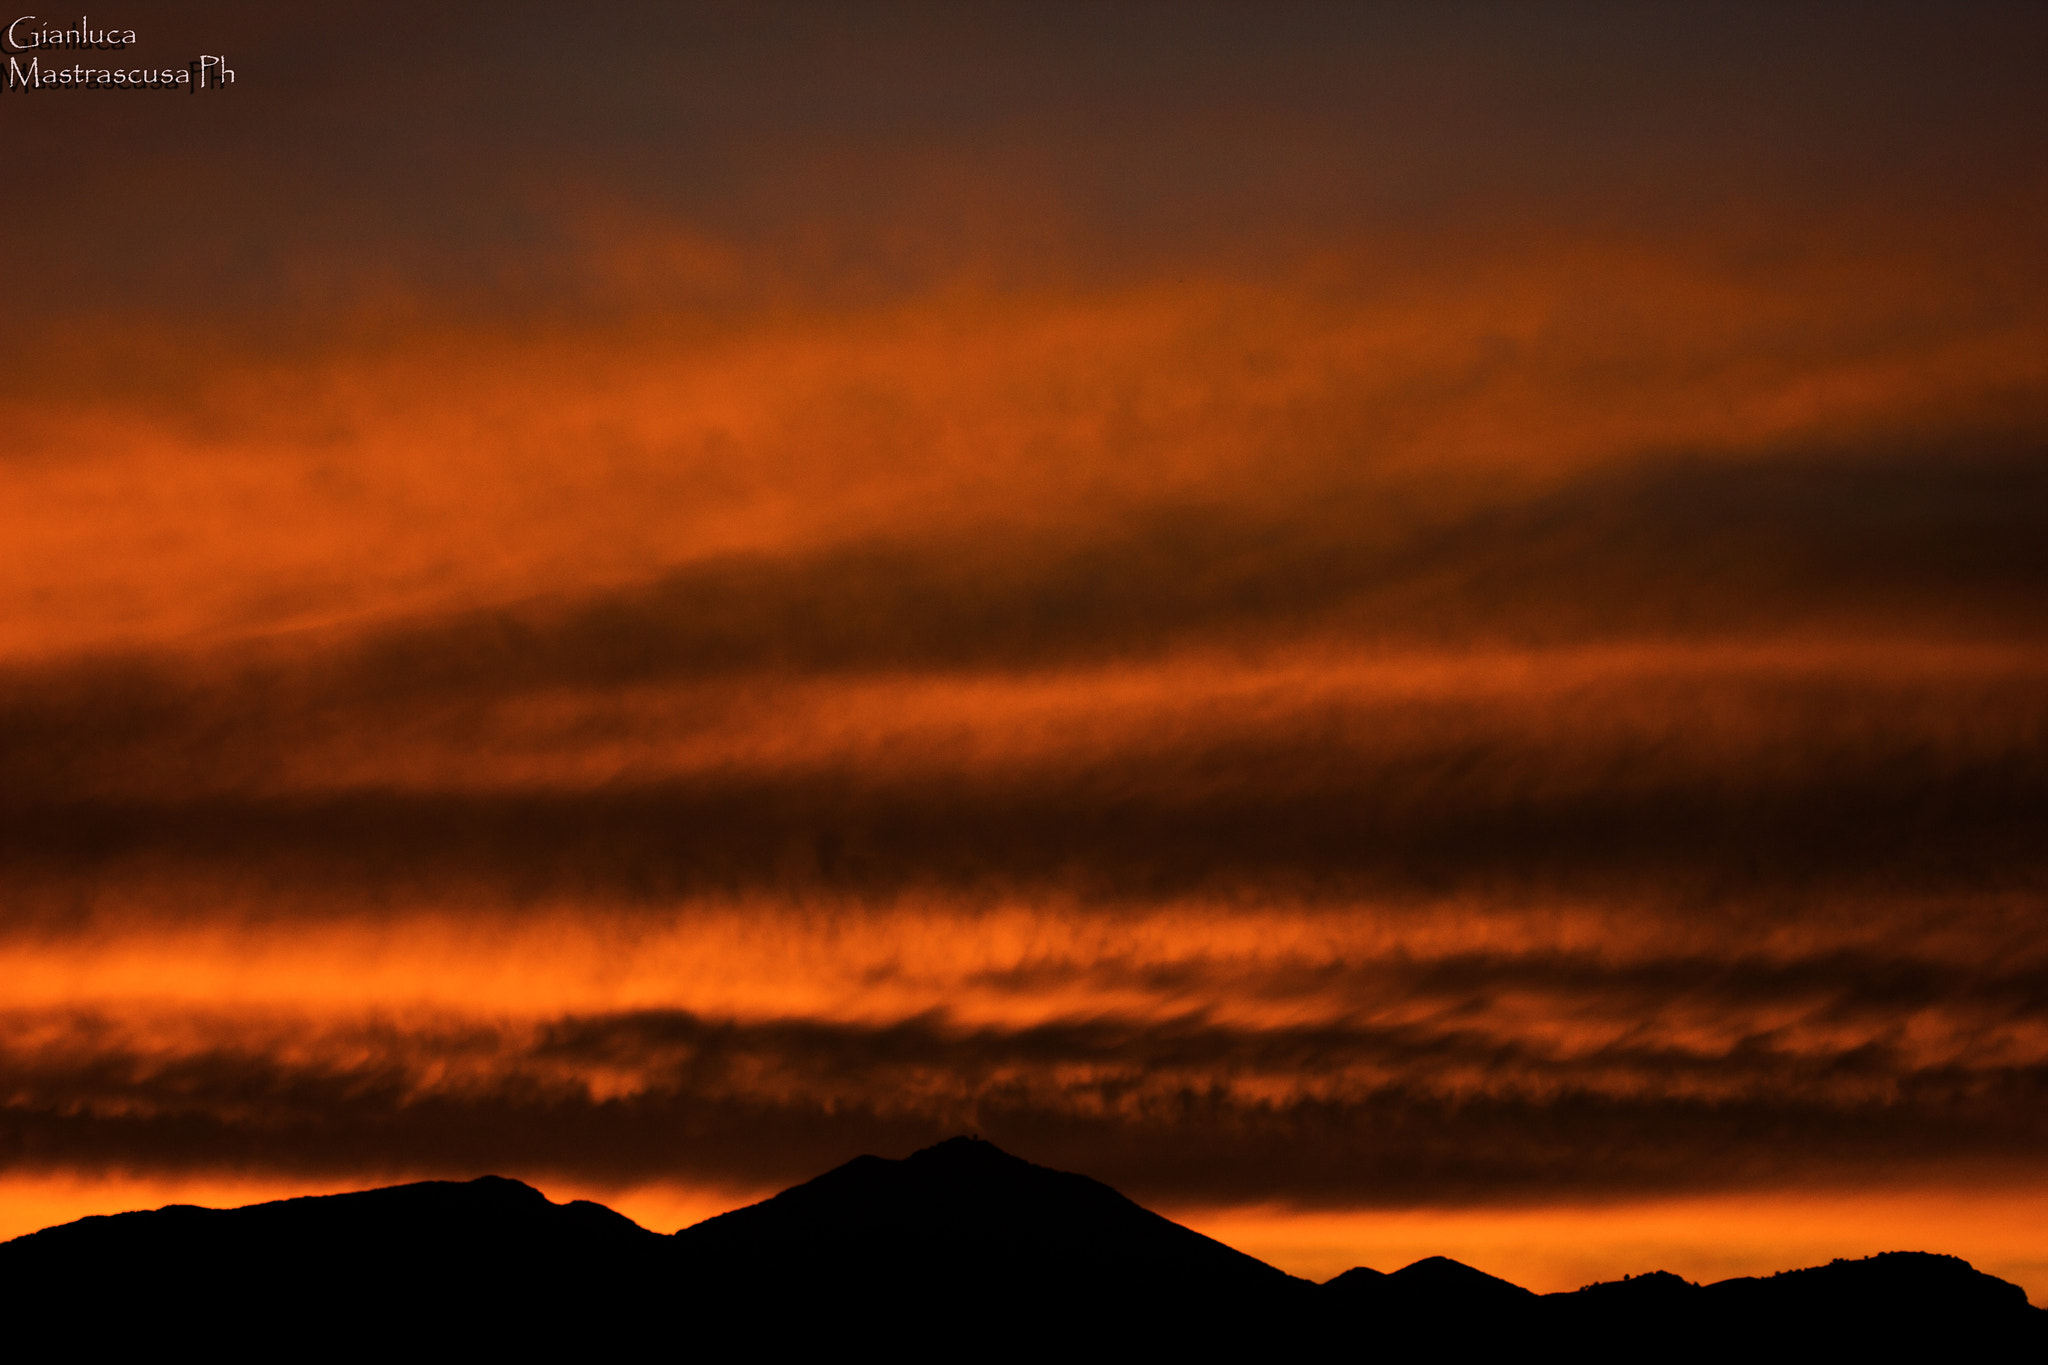 Photograph Special Sunset by Gianluca Mastrascusa on 500px